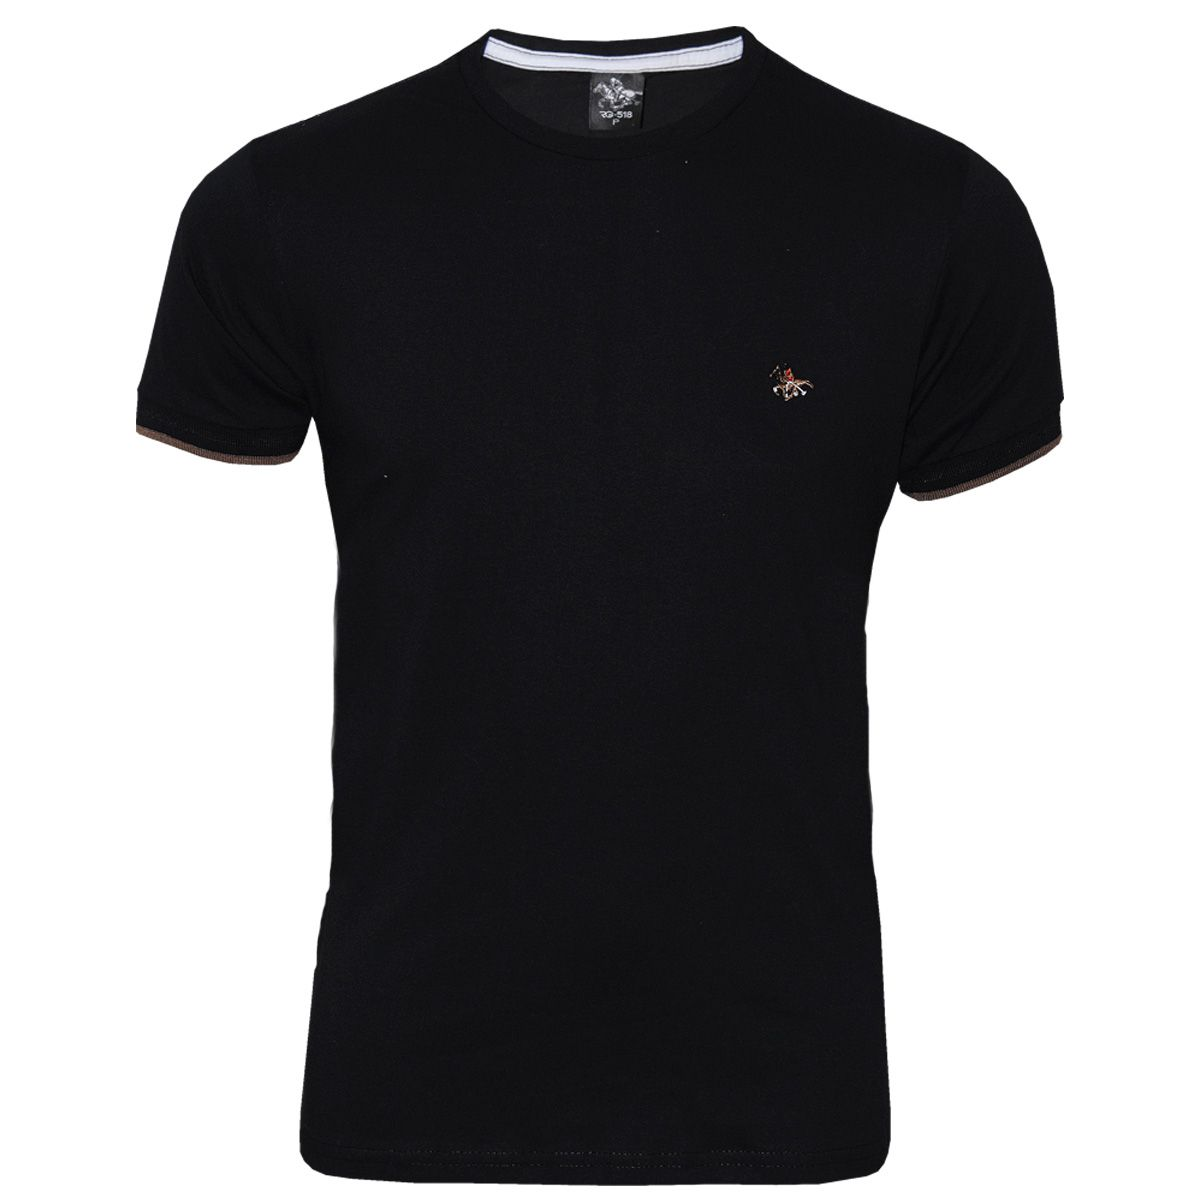 CAMISETA CARECA POLO RG518 REF 16312